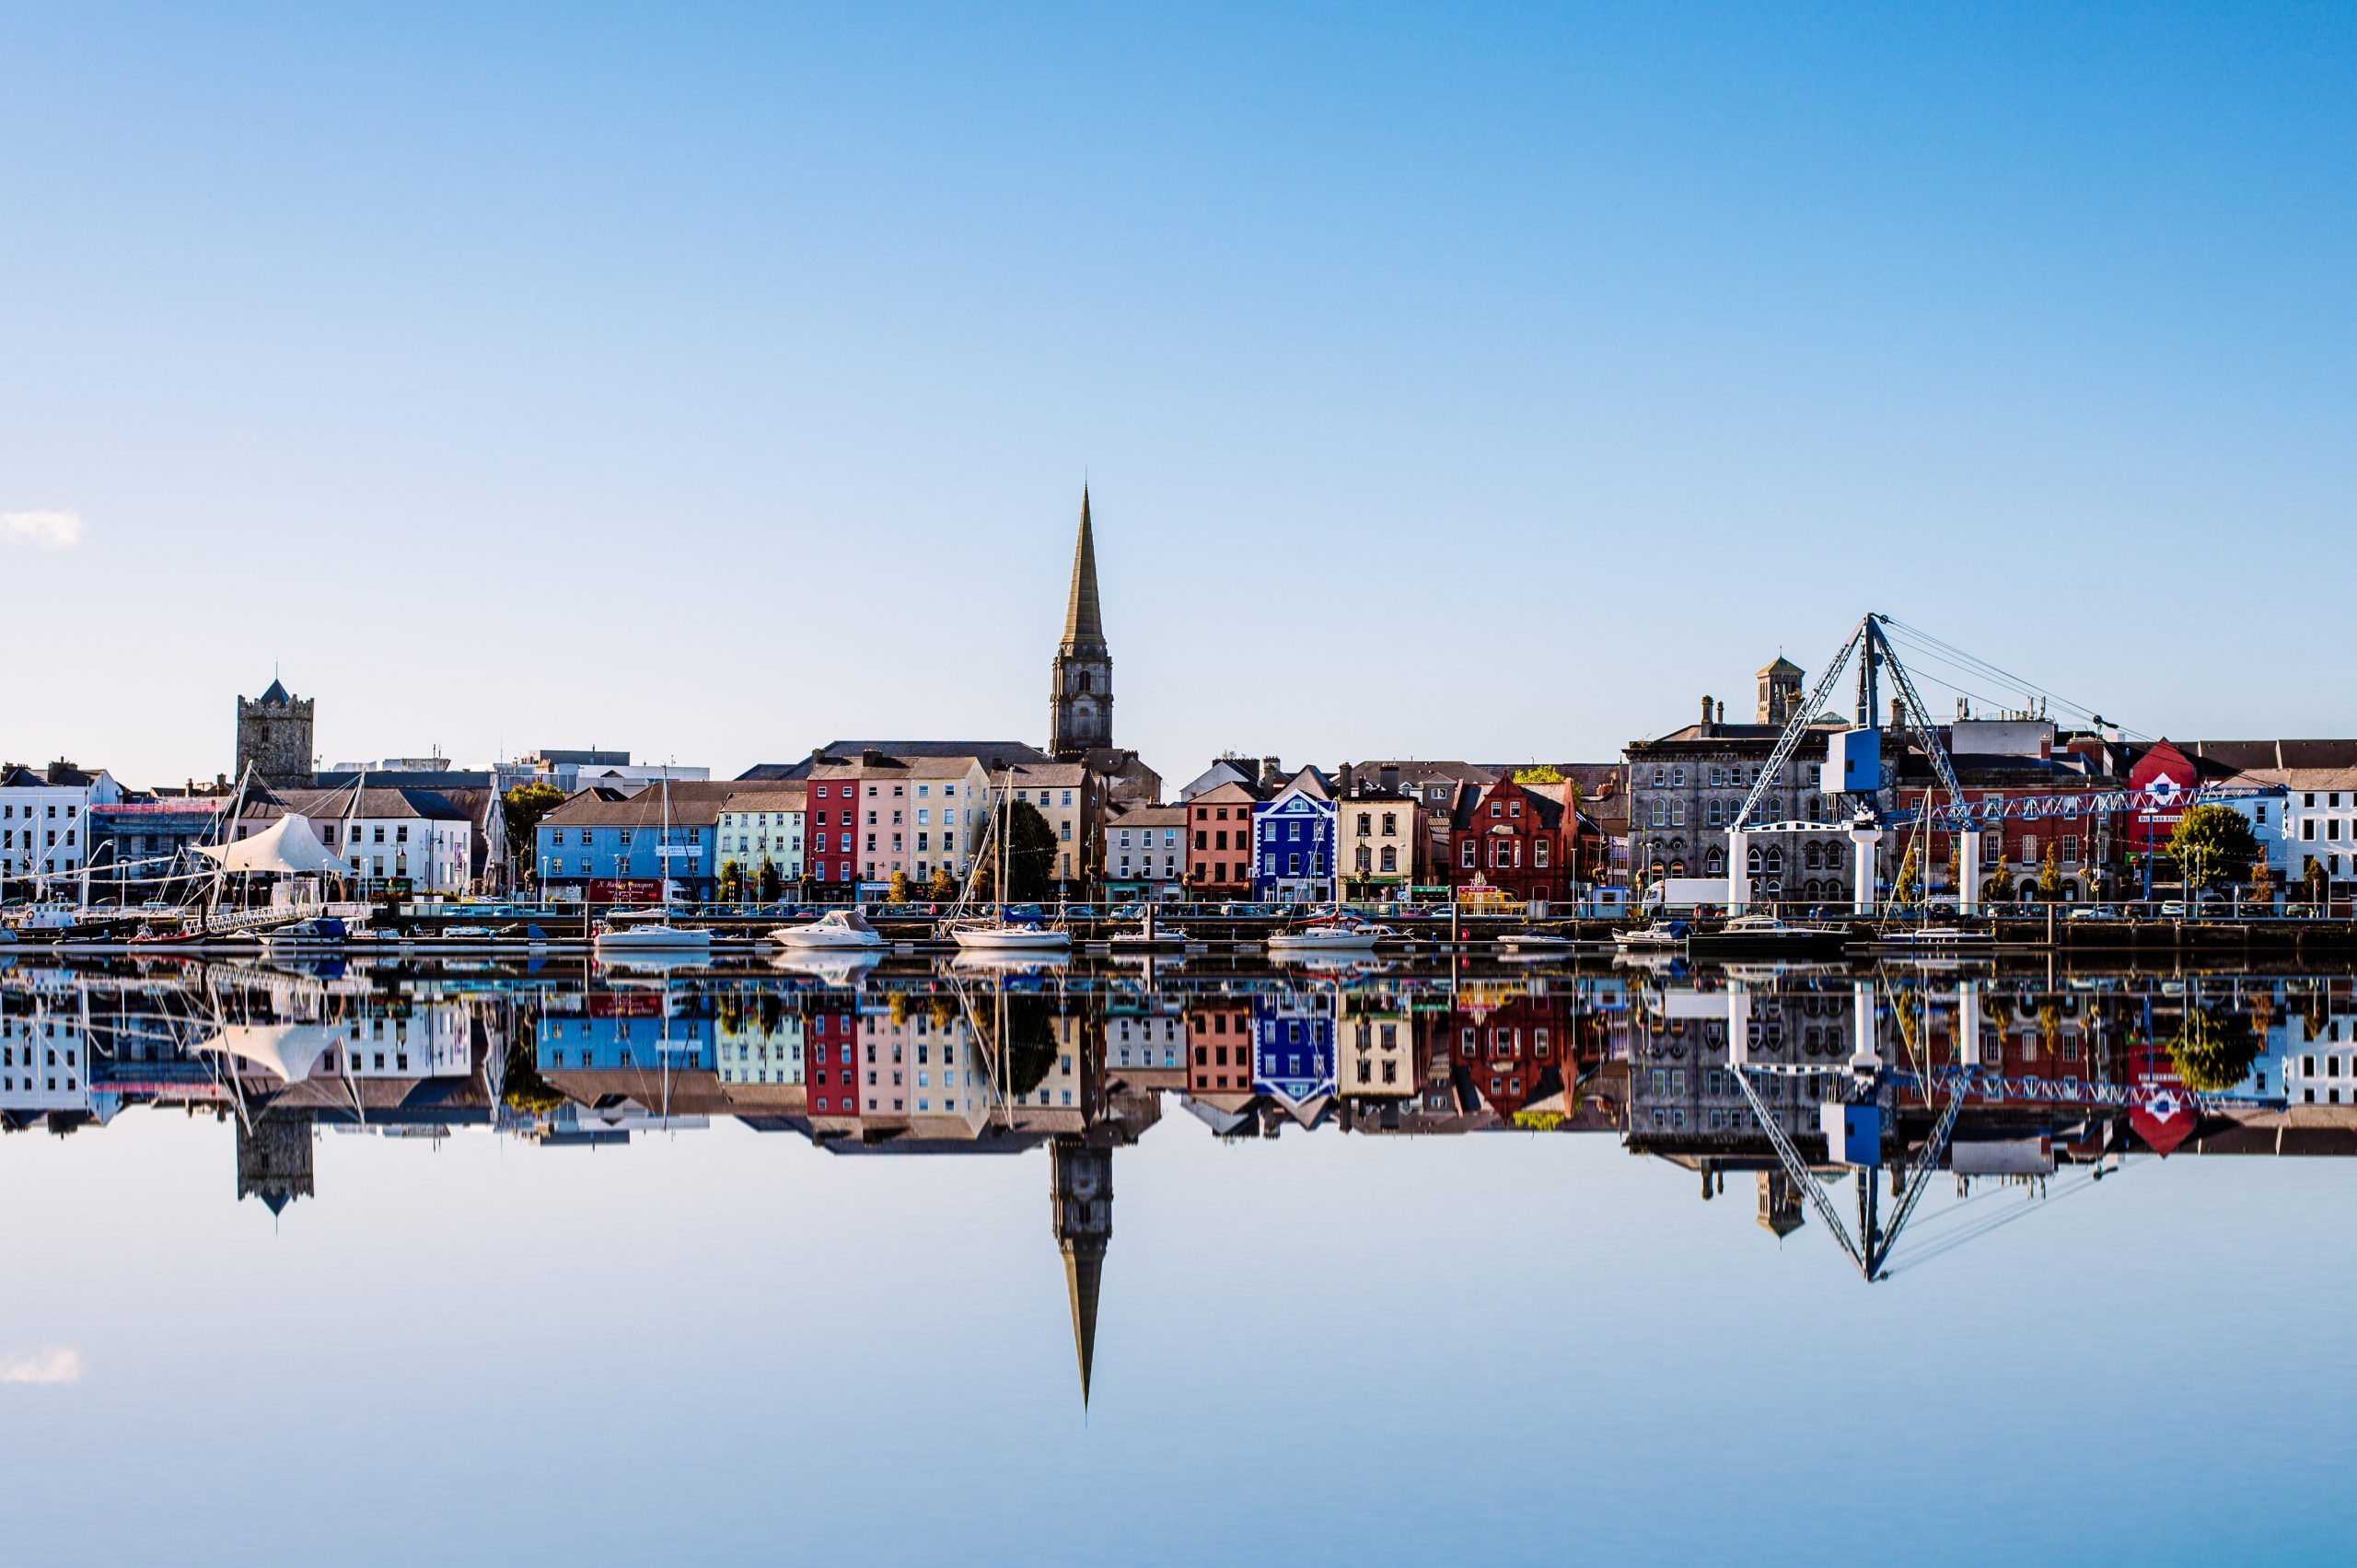 Waterford - Find Your Future